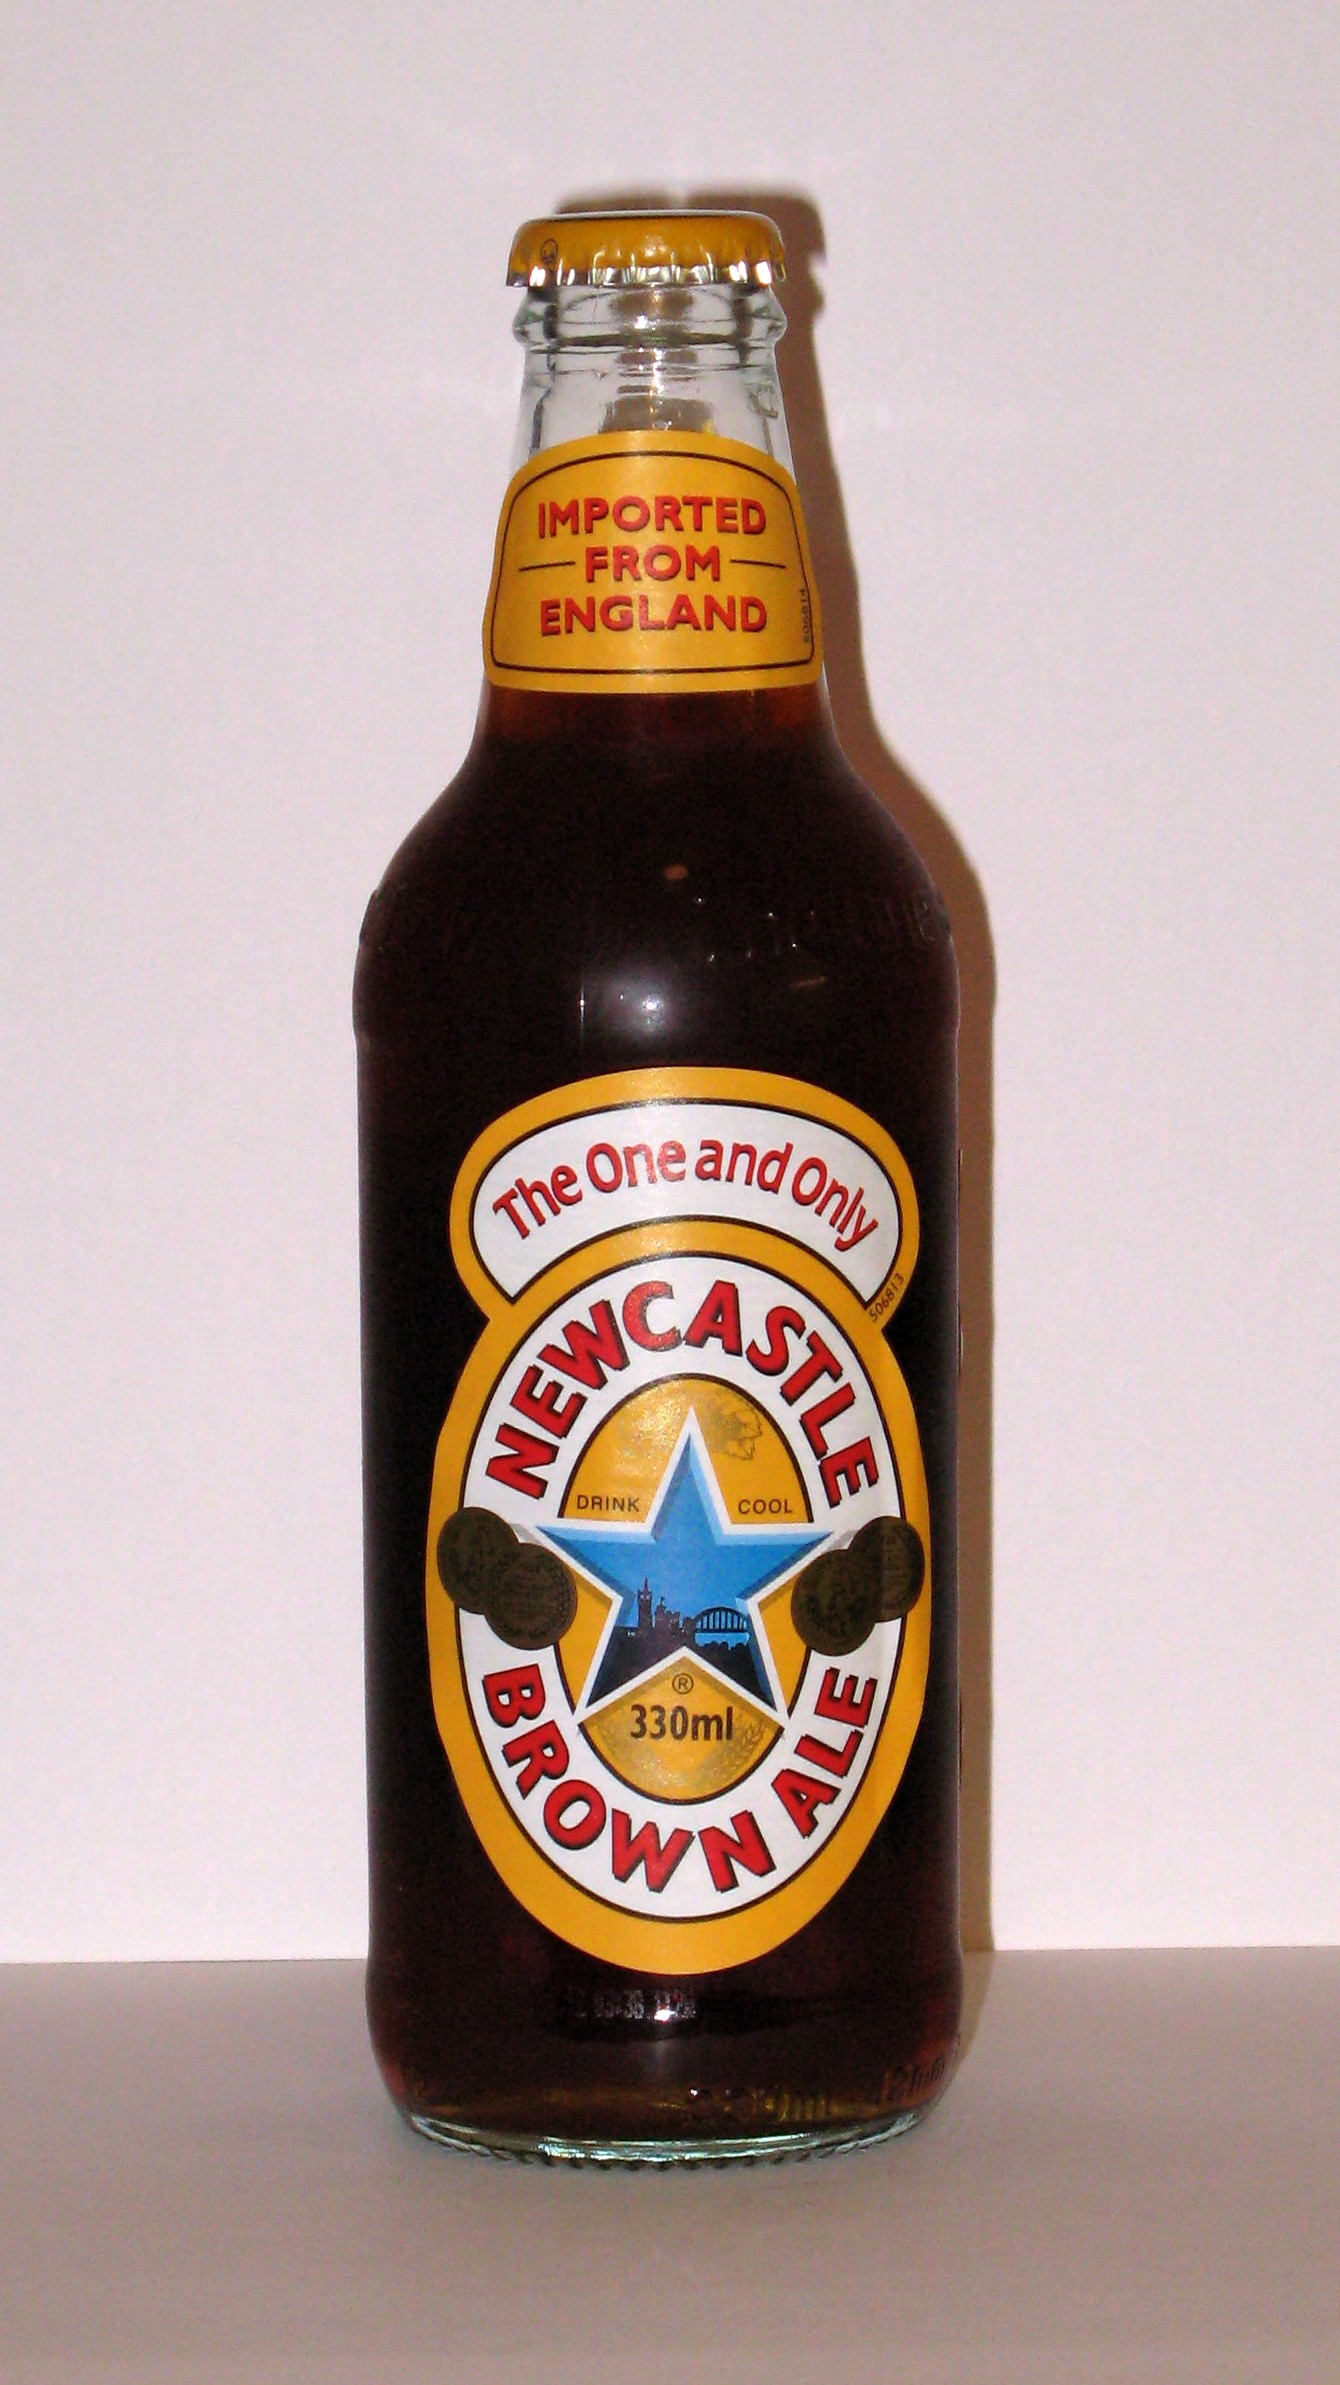 A full bottle of Newcastle Brown Ale